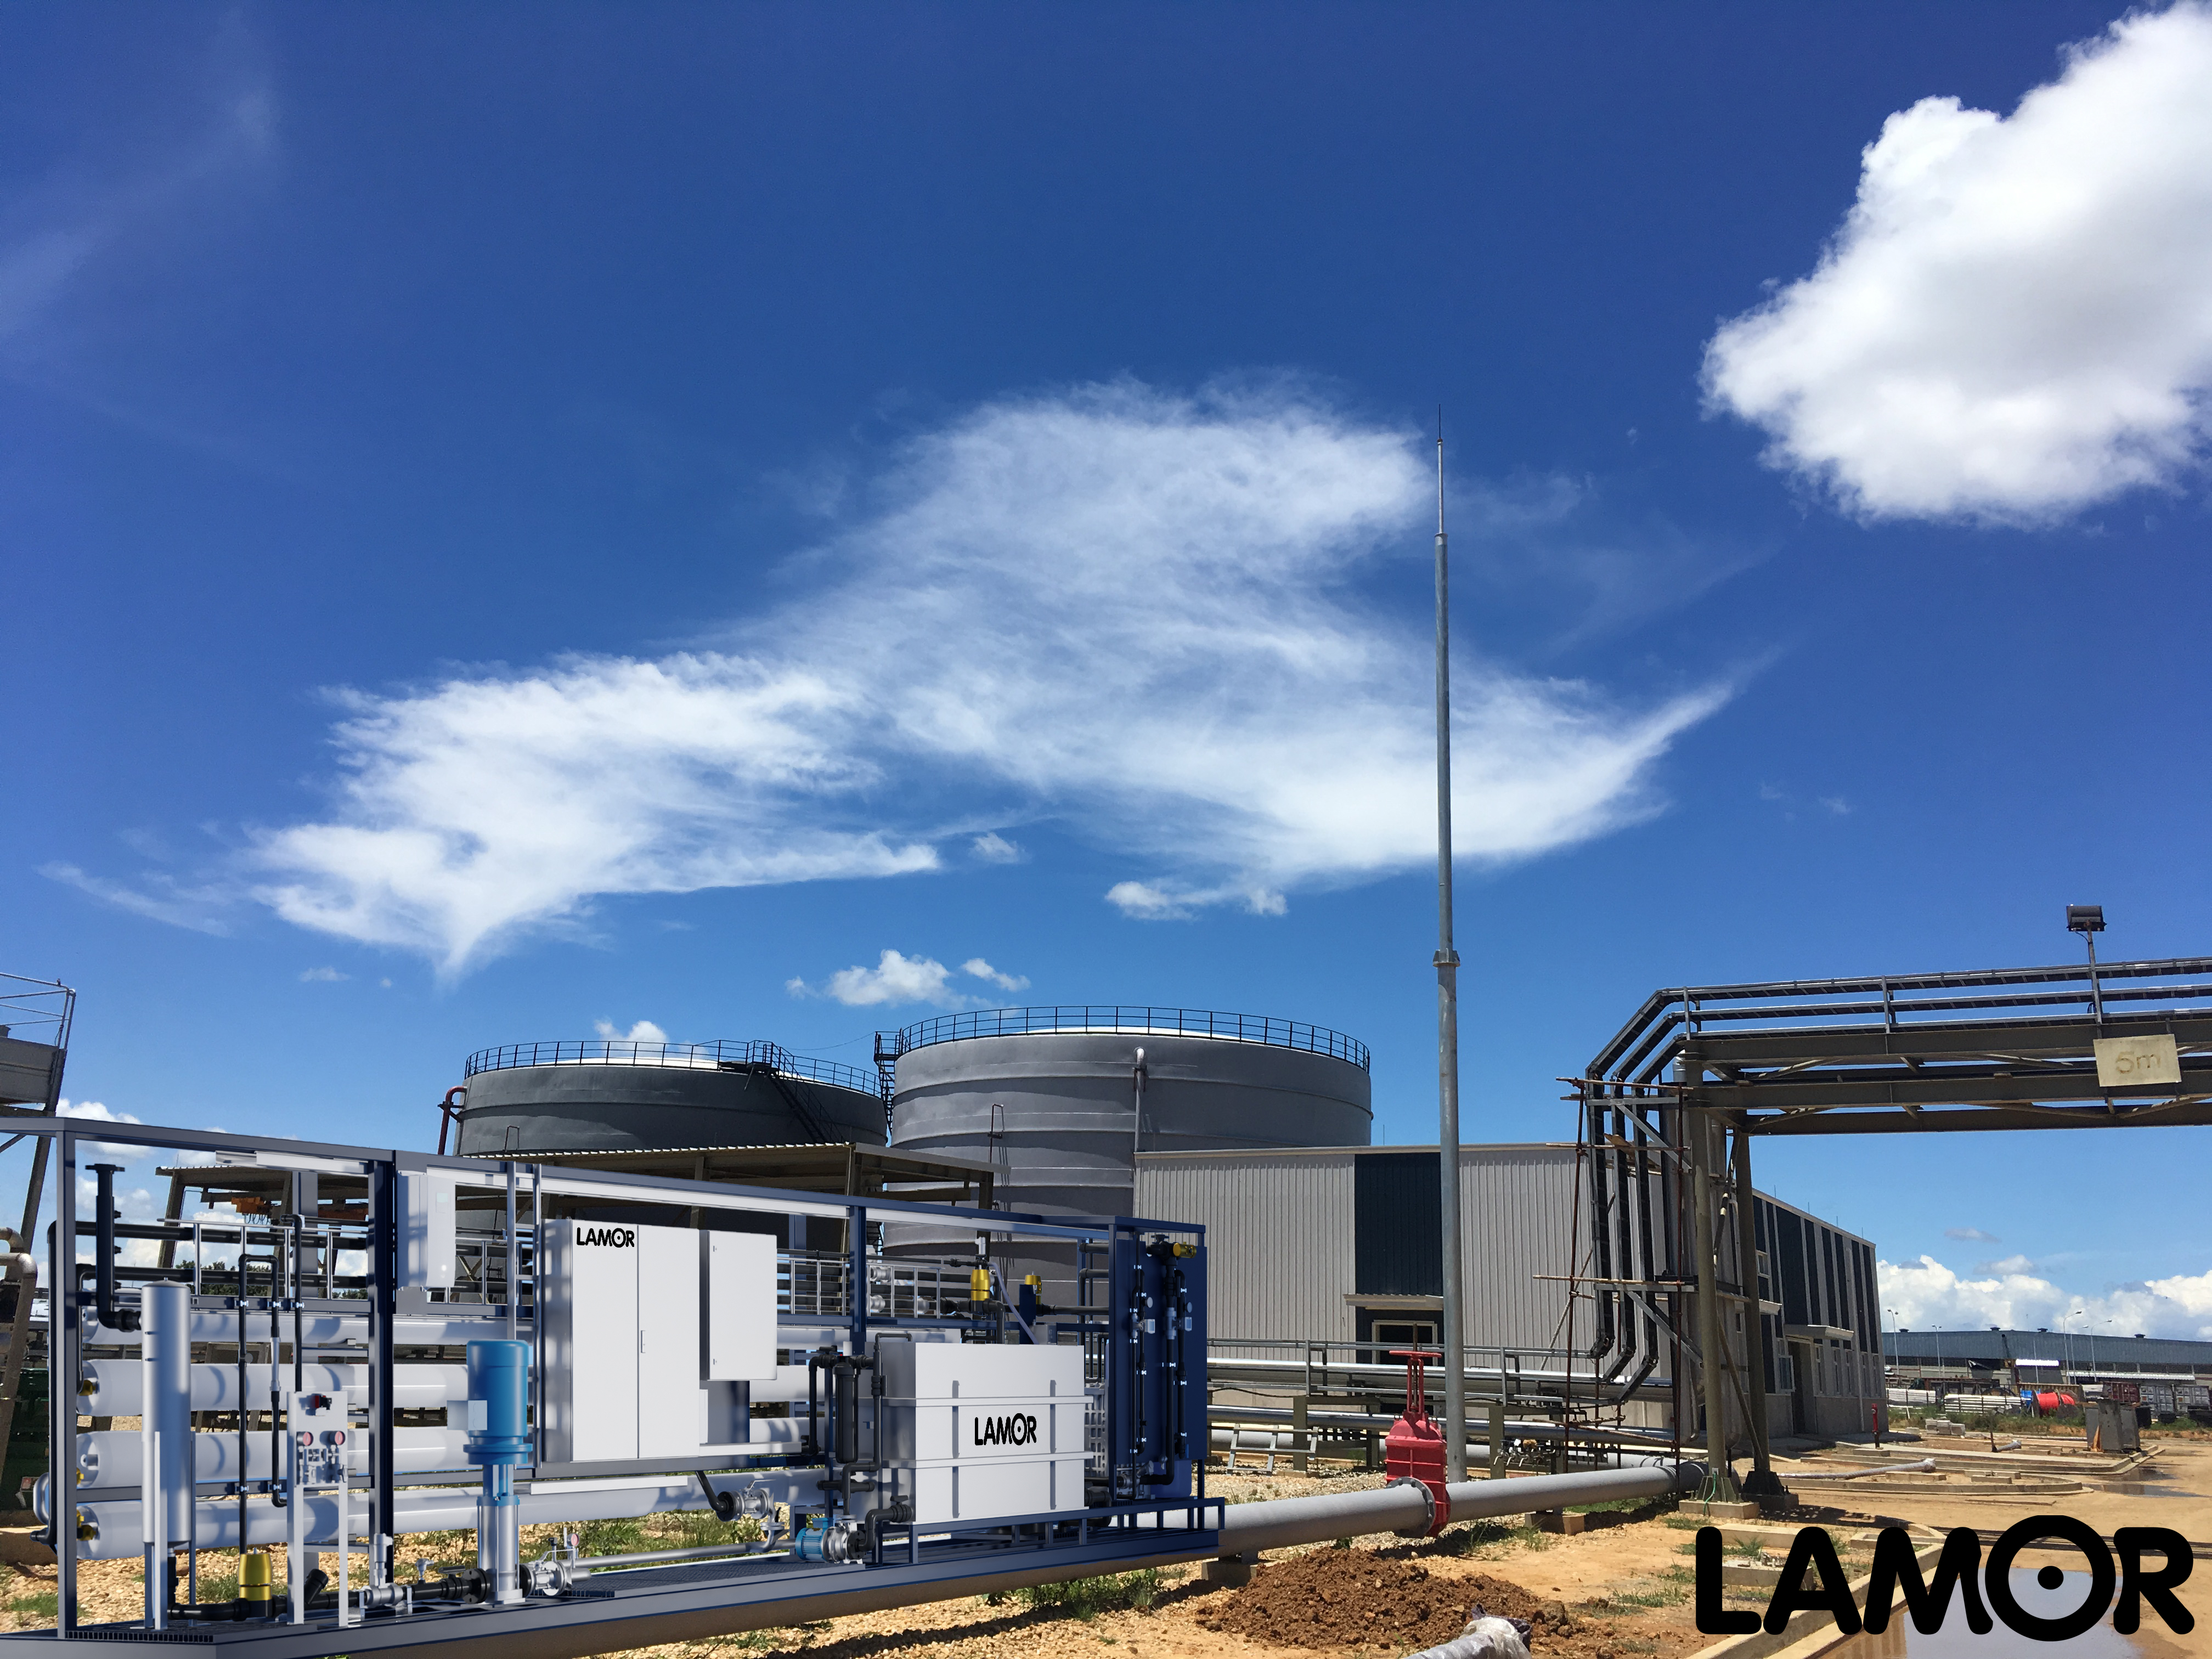 Lamor industrial process water production